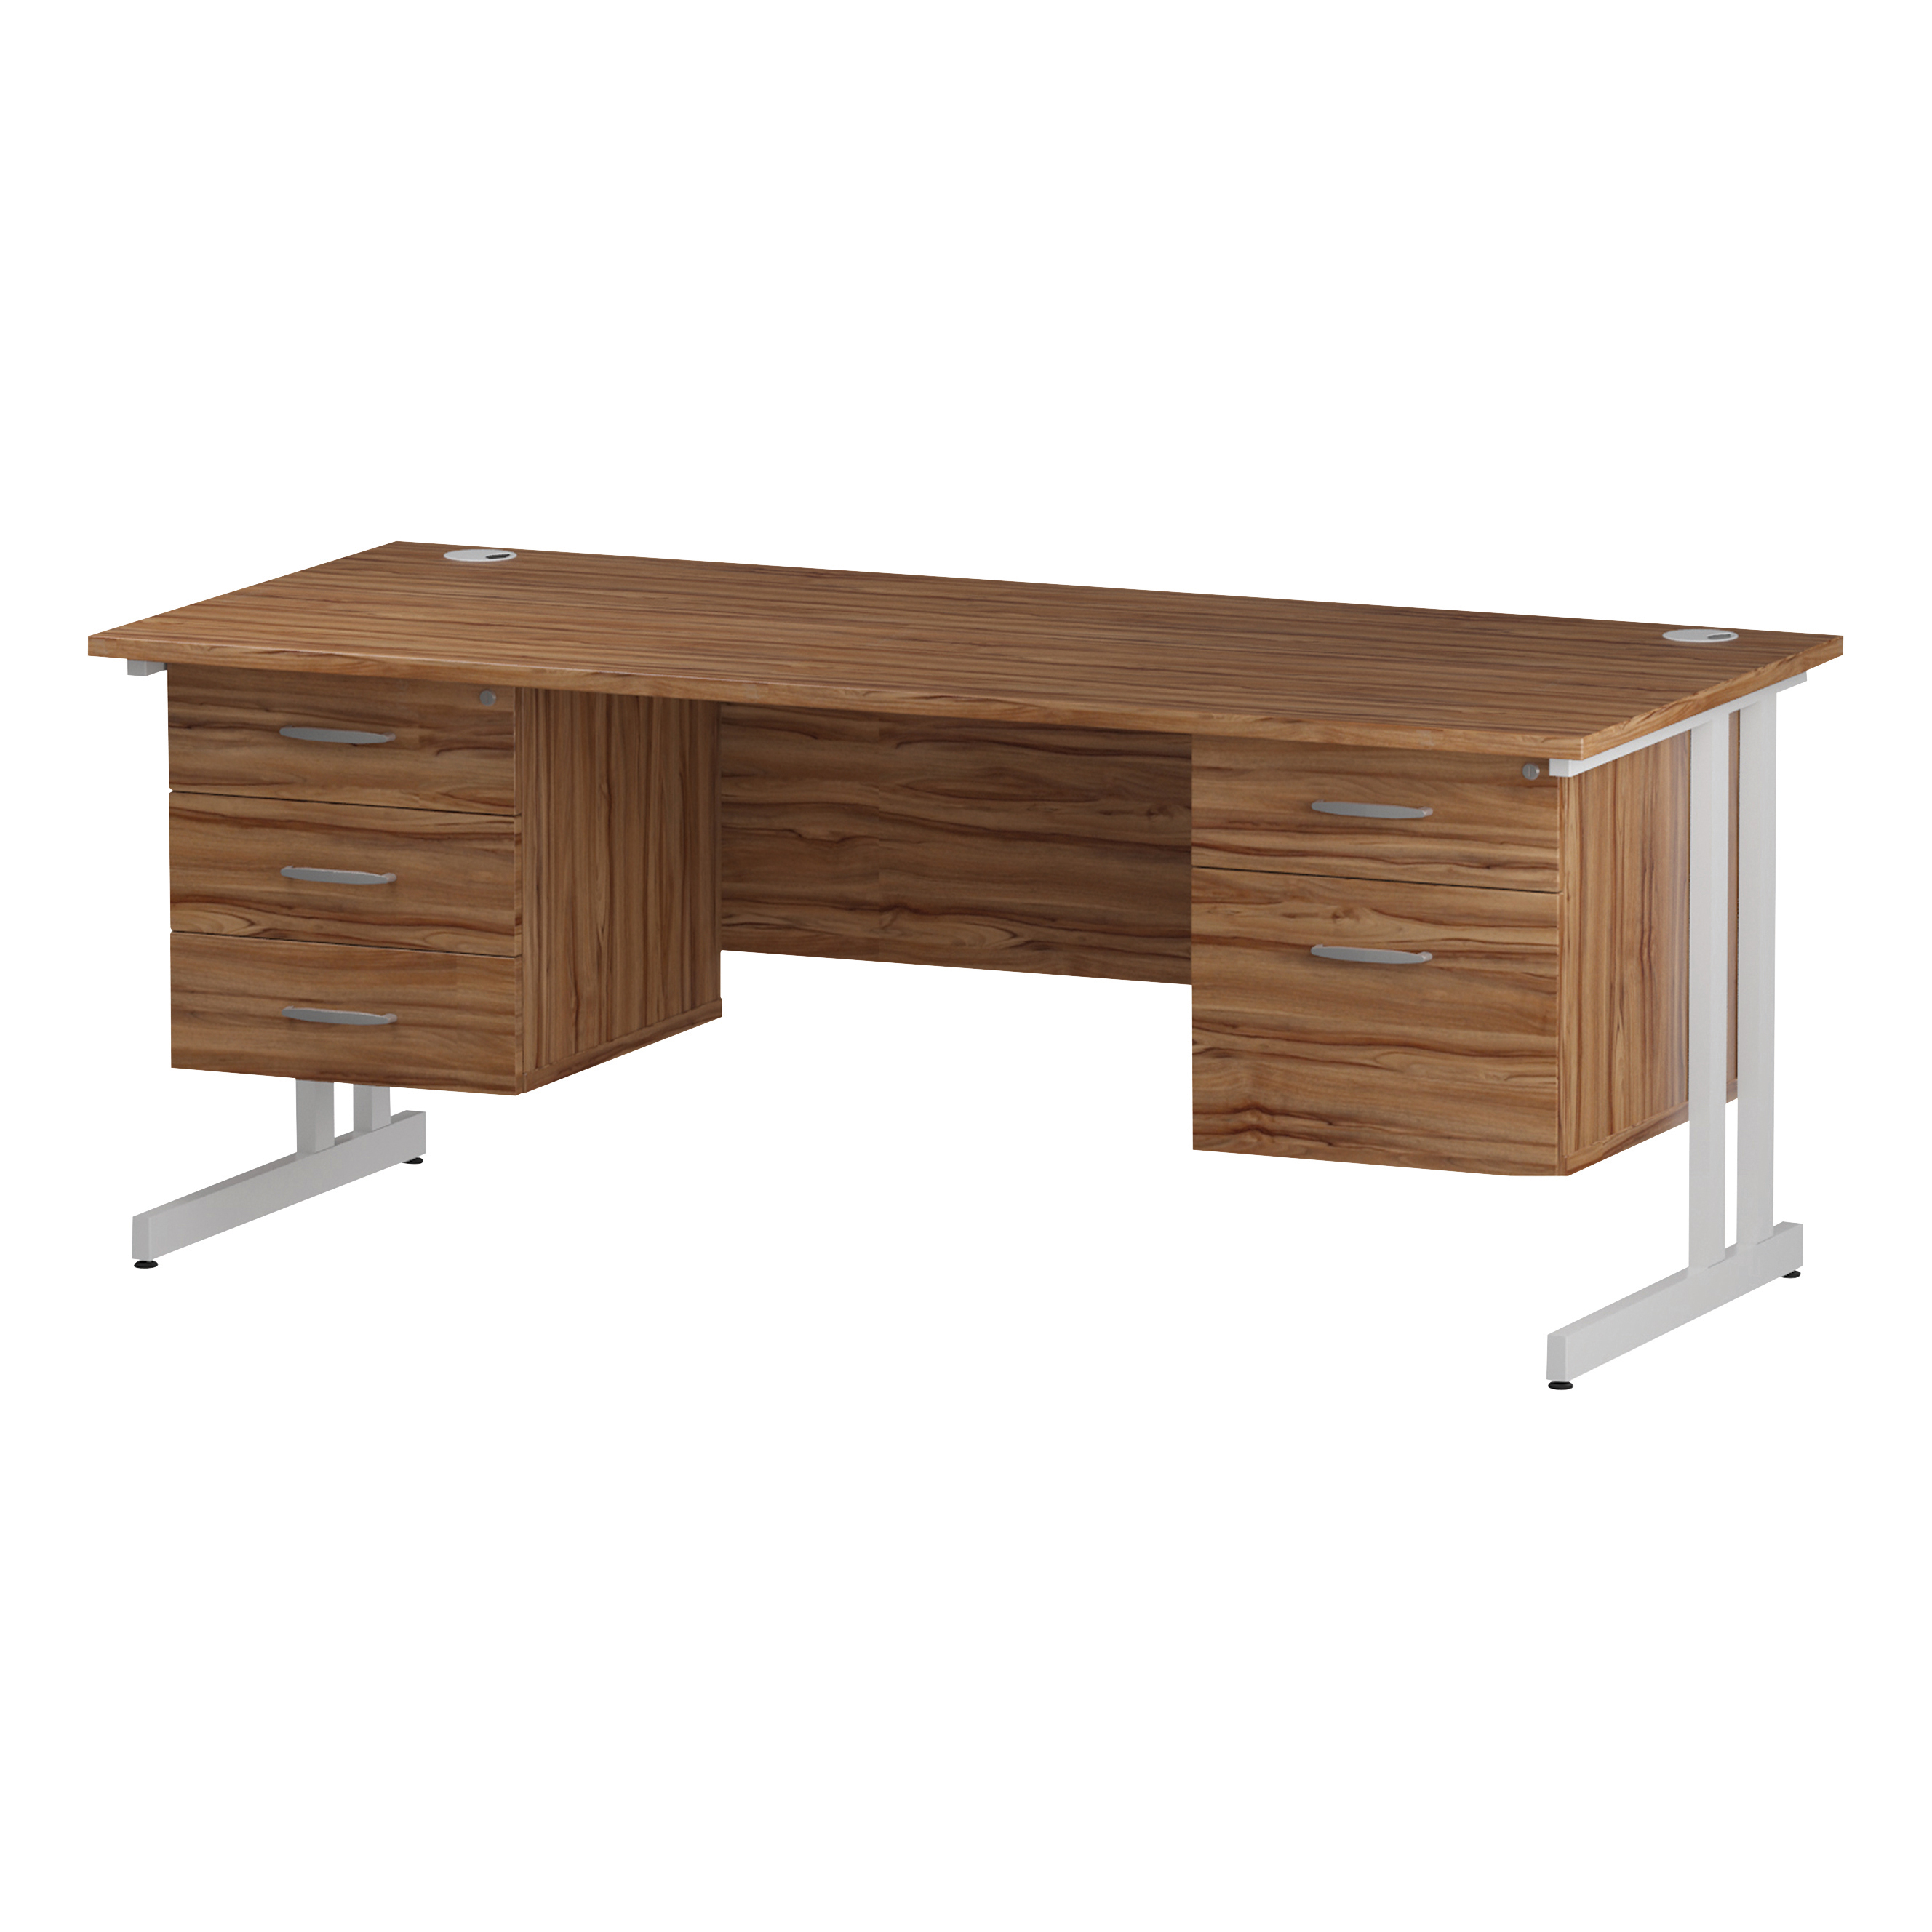 Trexus Rectangular Desk White Cantilever Leg 1800x800mm Double Fixed Ped 2&3 Drawers Walnut Ref I001958